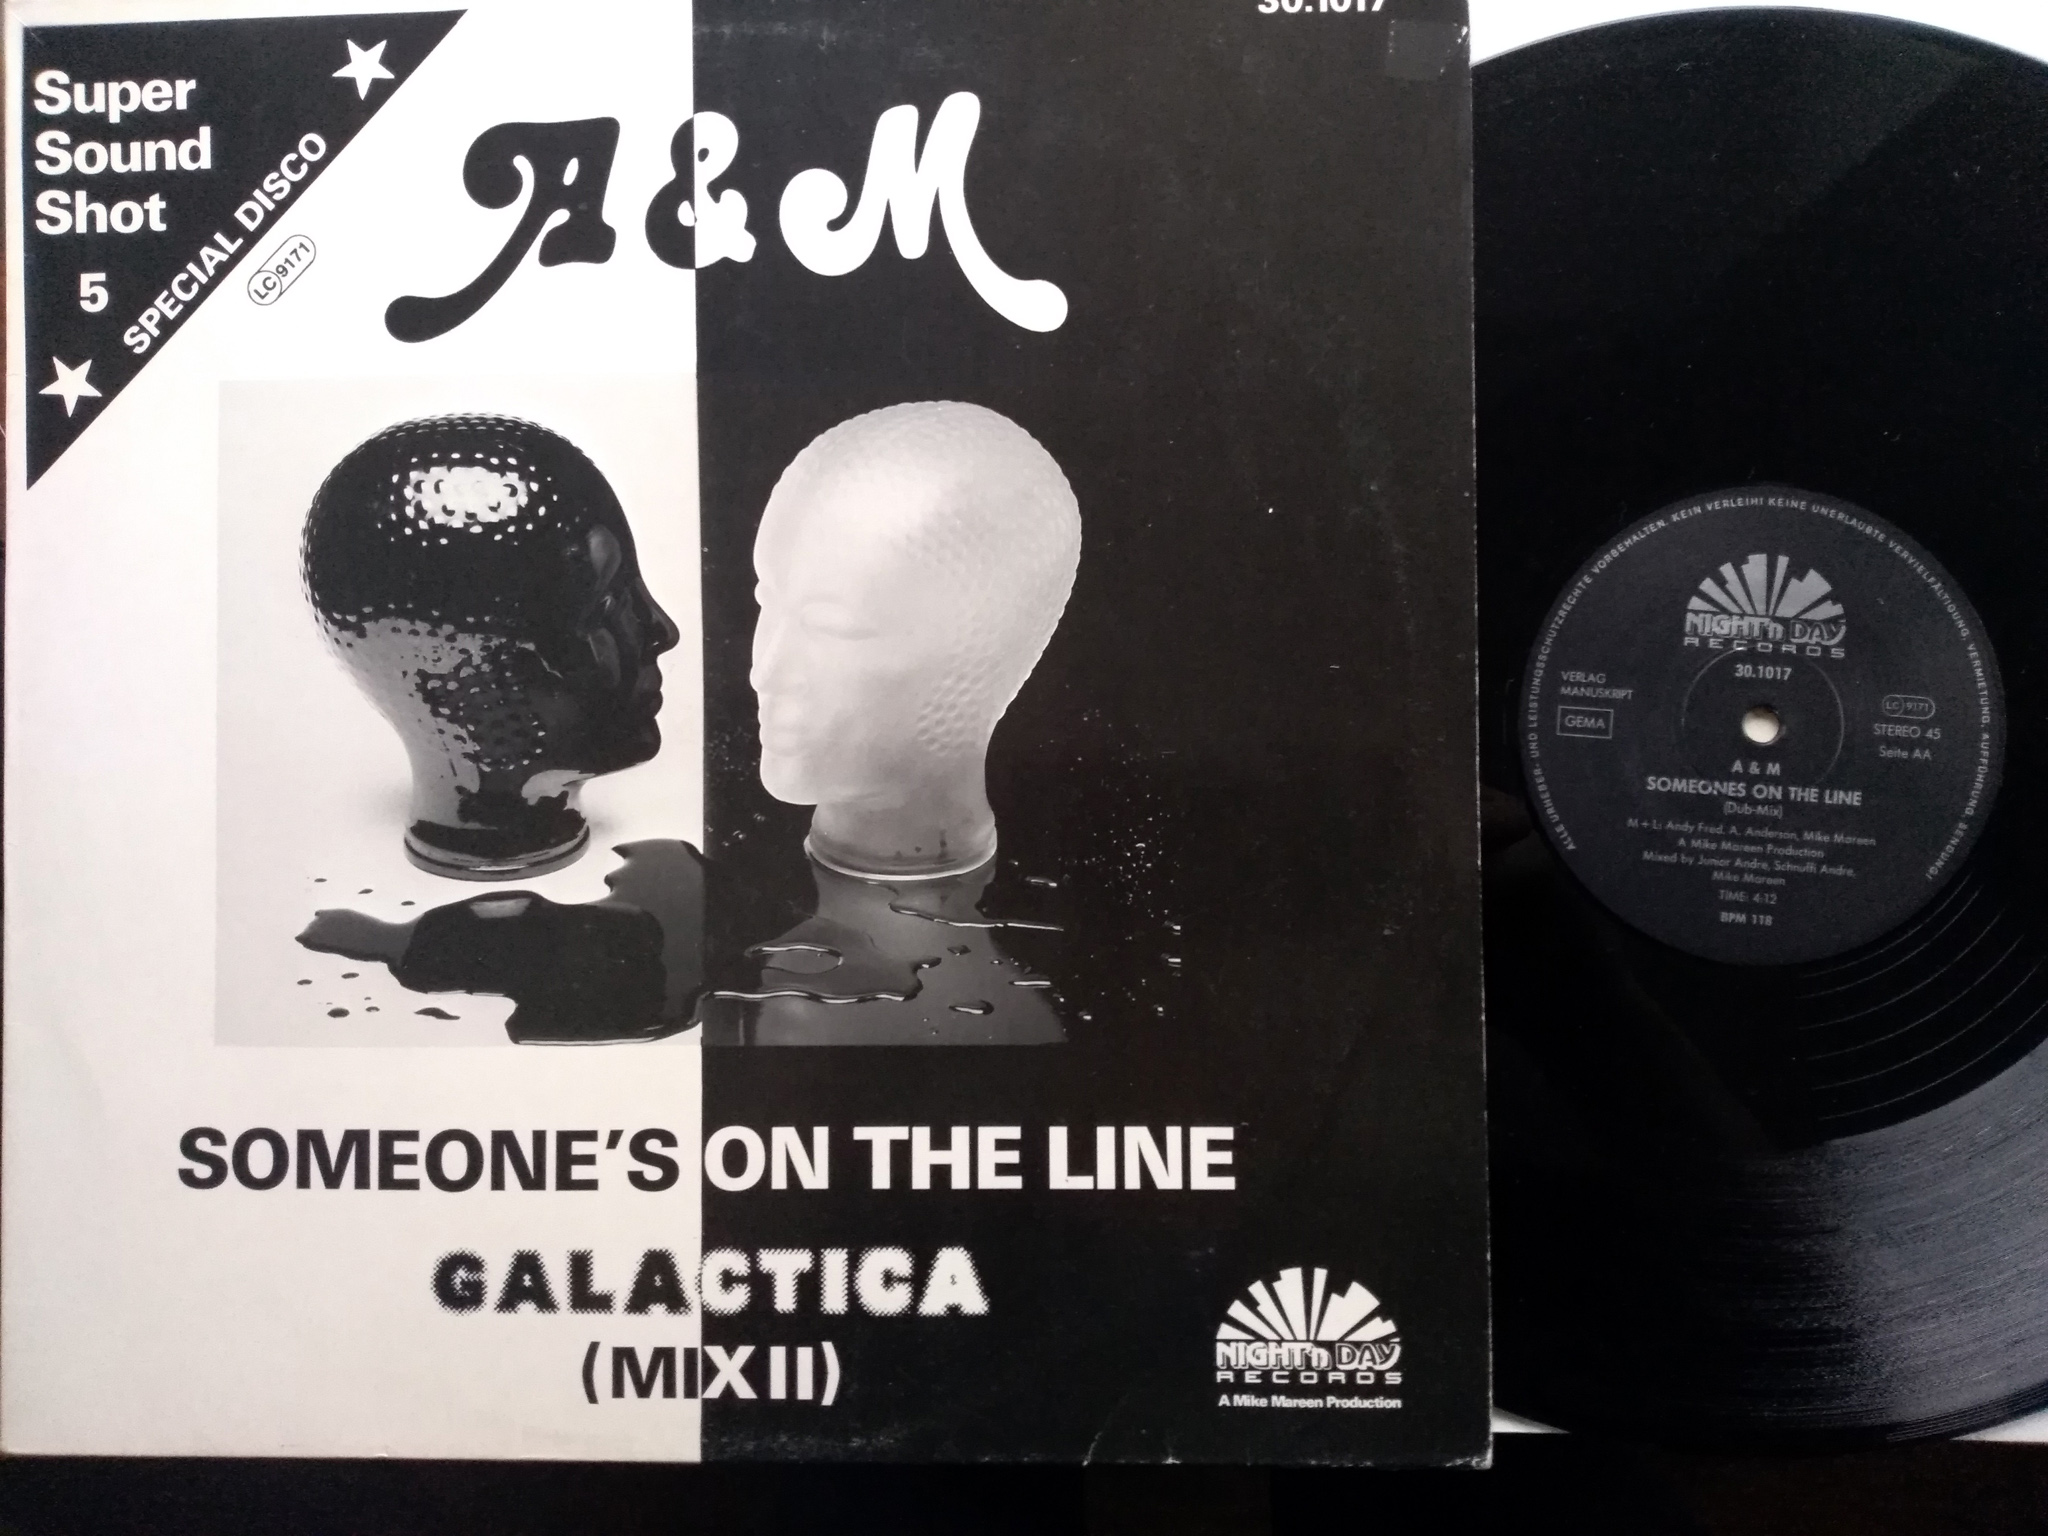 A and M - Someone's On The Line